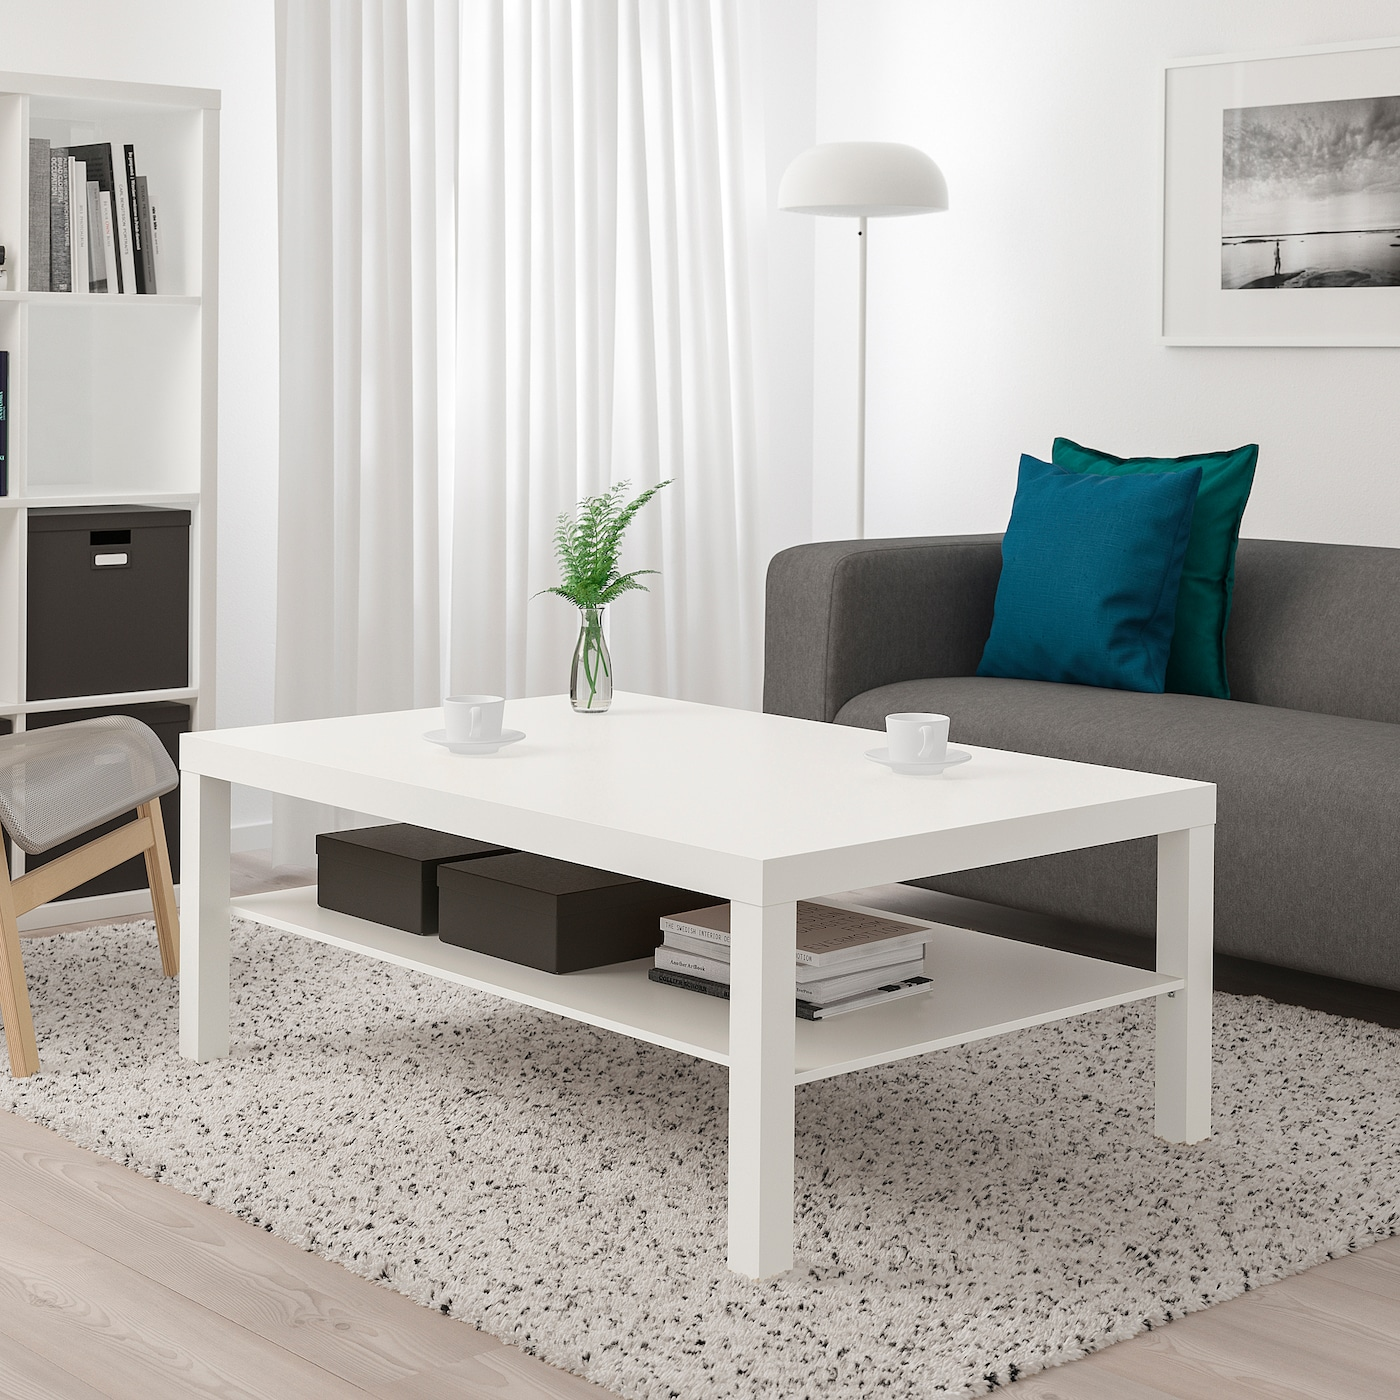 LACK Coffee table - white 3x3 cm